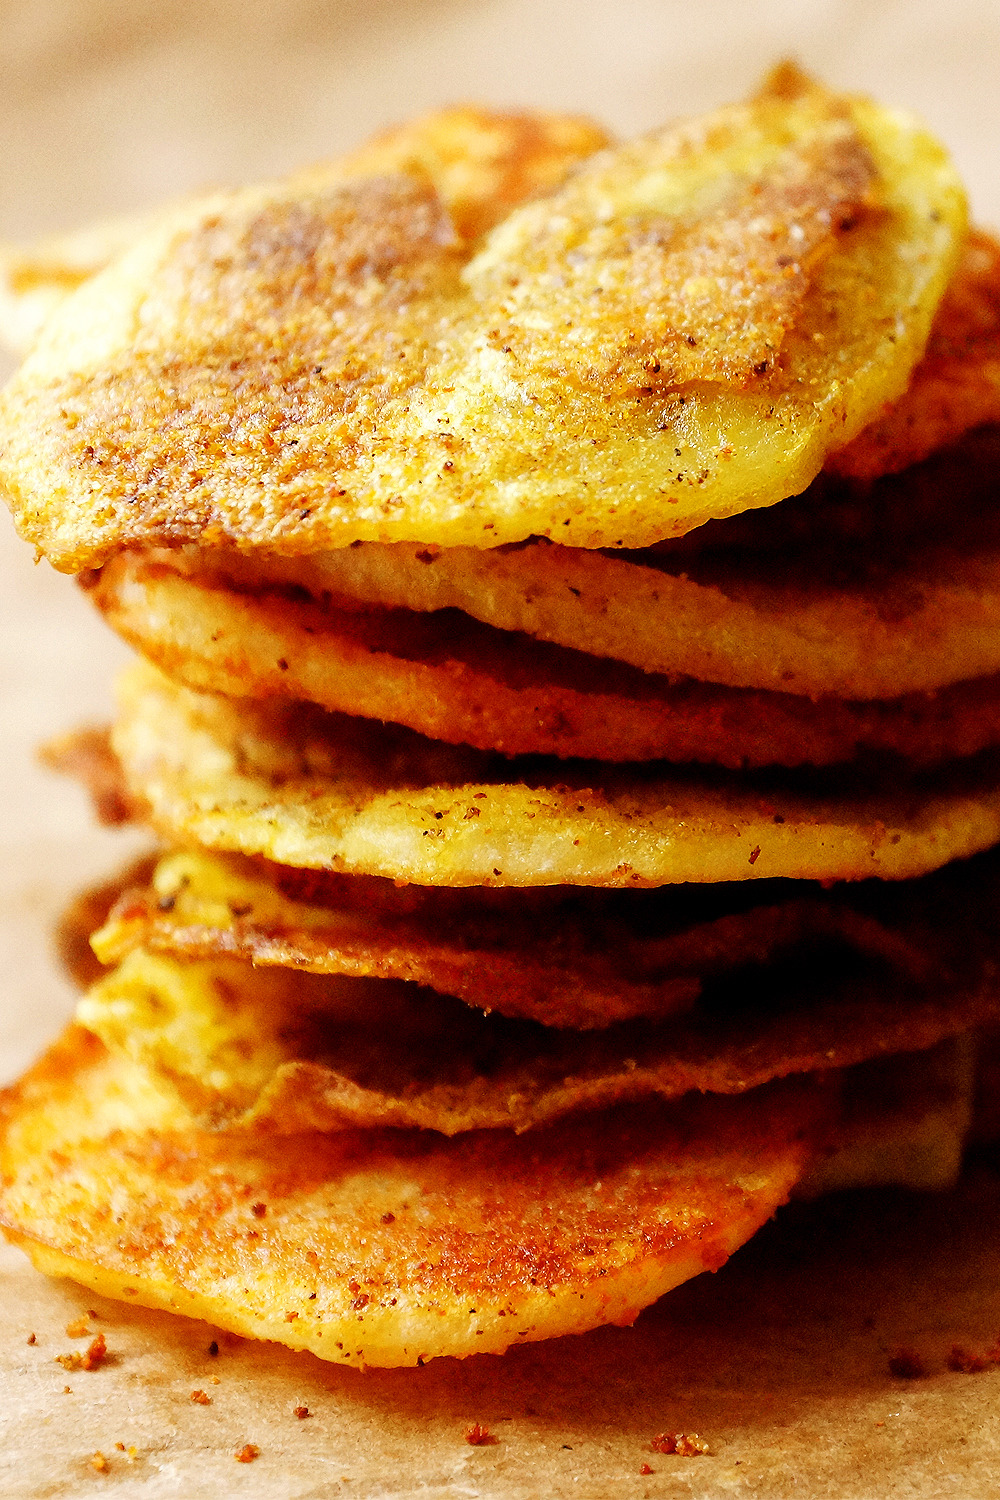 (via Oven Baked Potato Chips Divine Healthy Food)